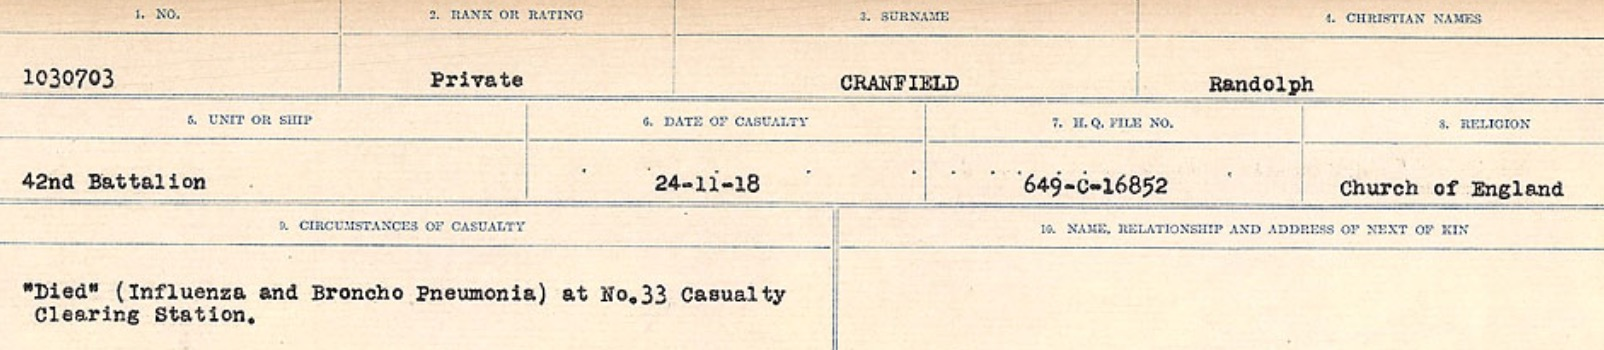 Circumstances of death registers– Source: Library and Archives Canada. CIRCUMSTANCES OF DEATH REGISTERS, FIRST WORLD WAR Surnames: CRABB TO CROSSLAND Microform Sequence 24; Volume Number 31829_B016733. Reference RG150, 1992-93/314, 168. Page 251 of 788.